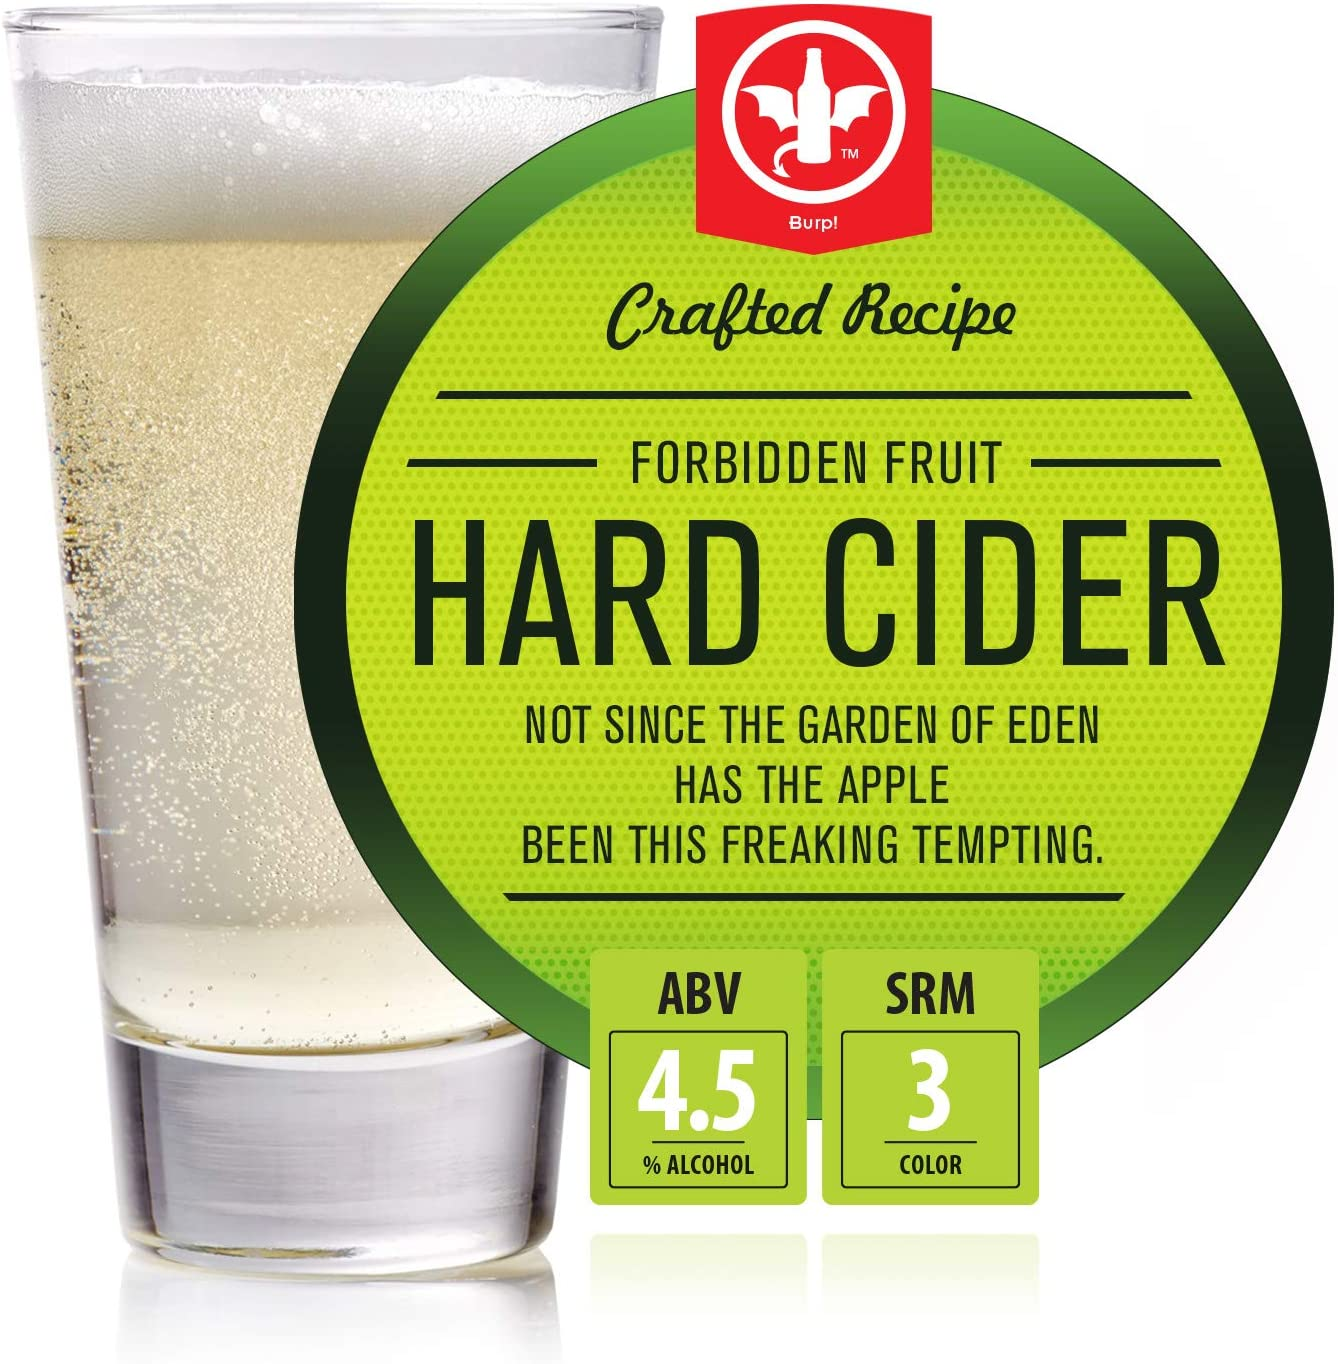 BrewDemon 2 Gal. Forbidden Fruit Hard Cider Recipe Kit - Makes a Wicked-Good 4.5% ABV Batch of Craft Brewed Hard Cider